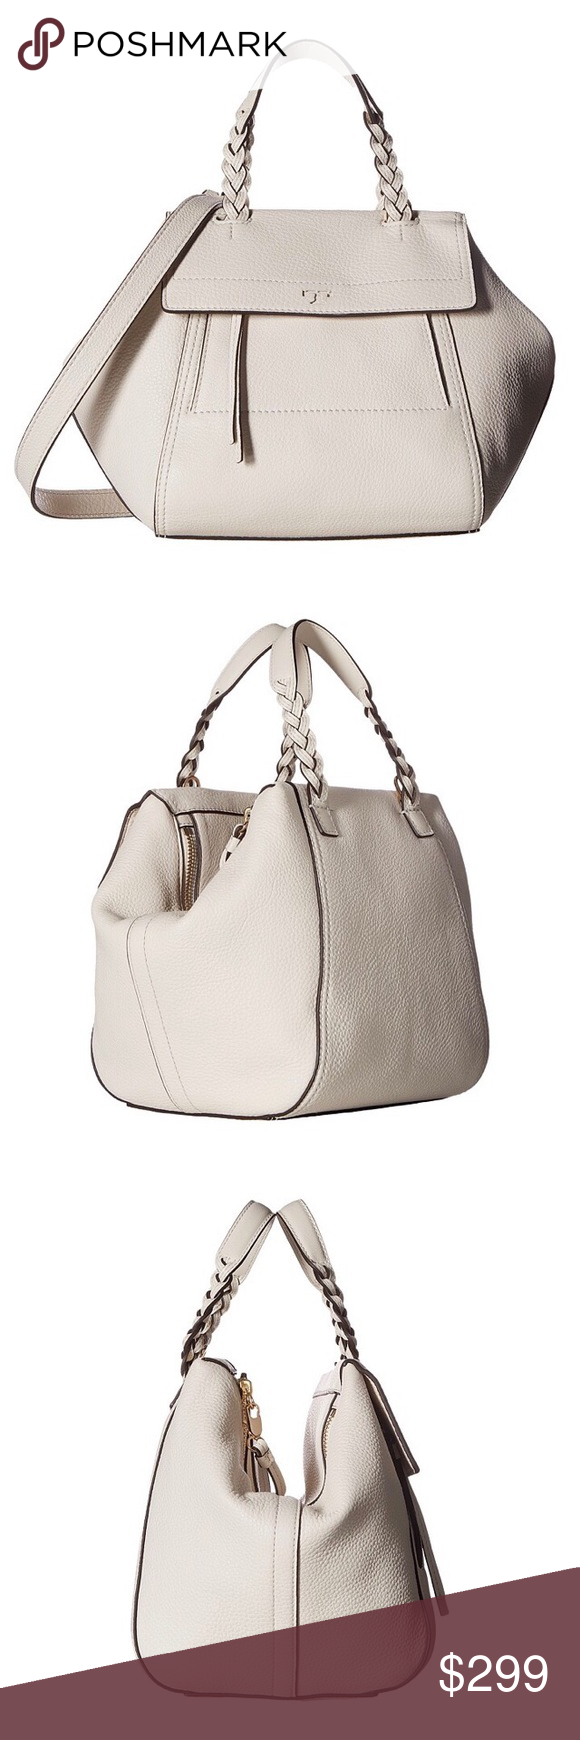 "Tory Burch Small/Mini Half Moon Satchel New Ivory Holds a 7"" tablet, a continental wallet, a small makeup bag, sunglasses, a card case, an iPhone 6 Plus and a lip color Pebbled leather Double zipper closure Flat handles with braided detailing; 4.98"" (12.5 cm) drop Adjustable, removable cross-body strap with 23.3"" (58.5 cm) drop 1 exterior zipper pocket, 1 card slot 1 interior zipper pocket, 3 slit pockets Height: 8.37"" (21 cm) Length: 8.17"" (20.5 cm) Depth: 7.97"" (20 cm) Tory Burch Bags…"